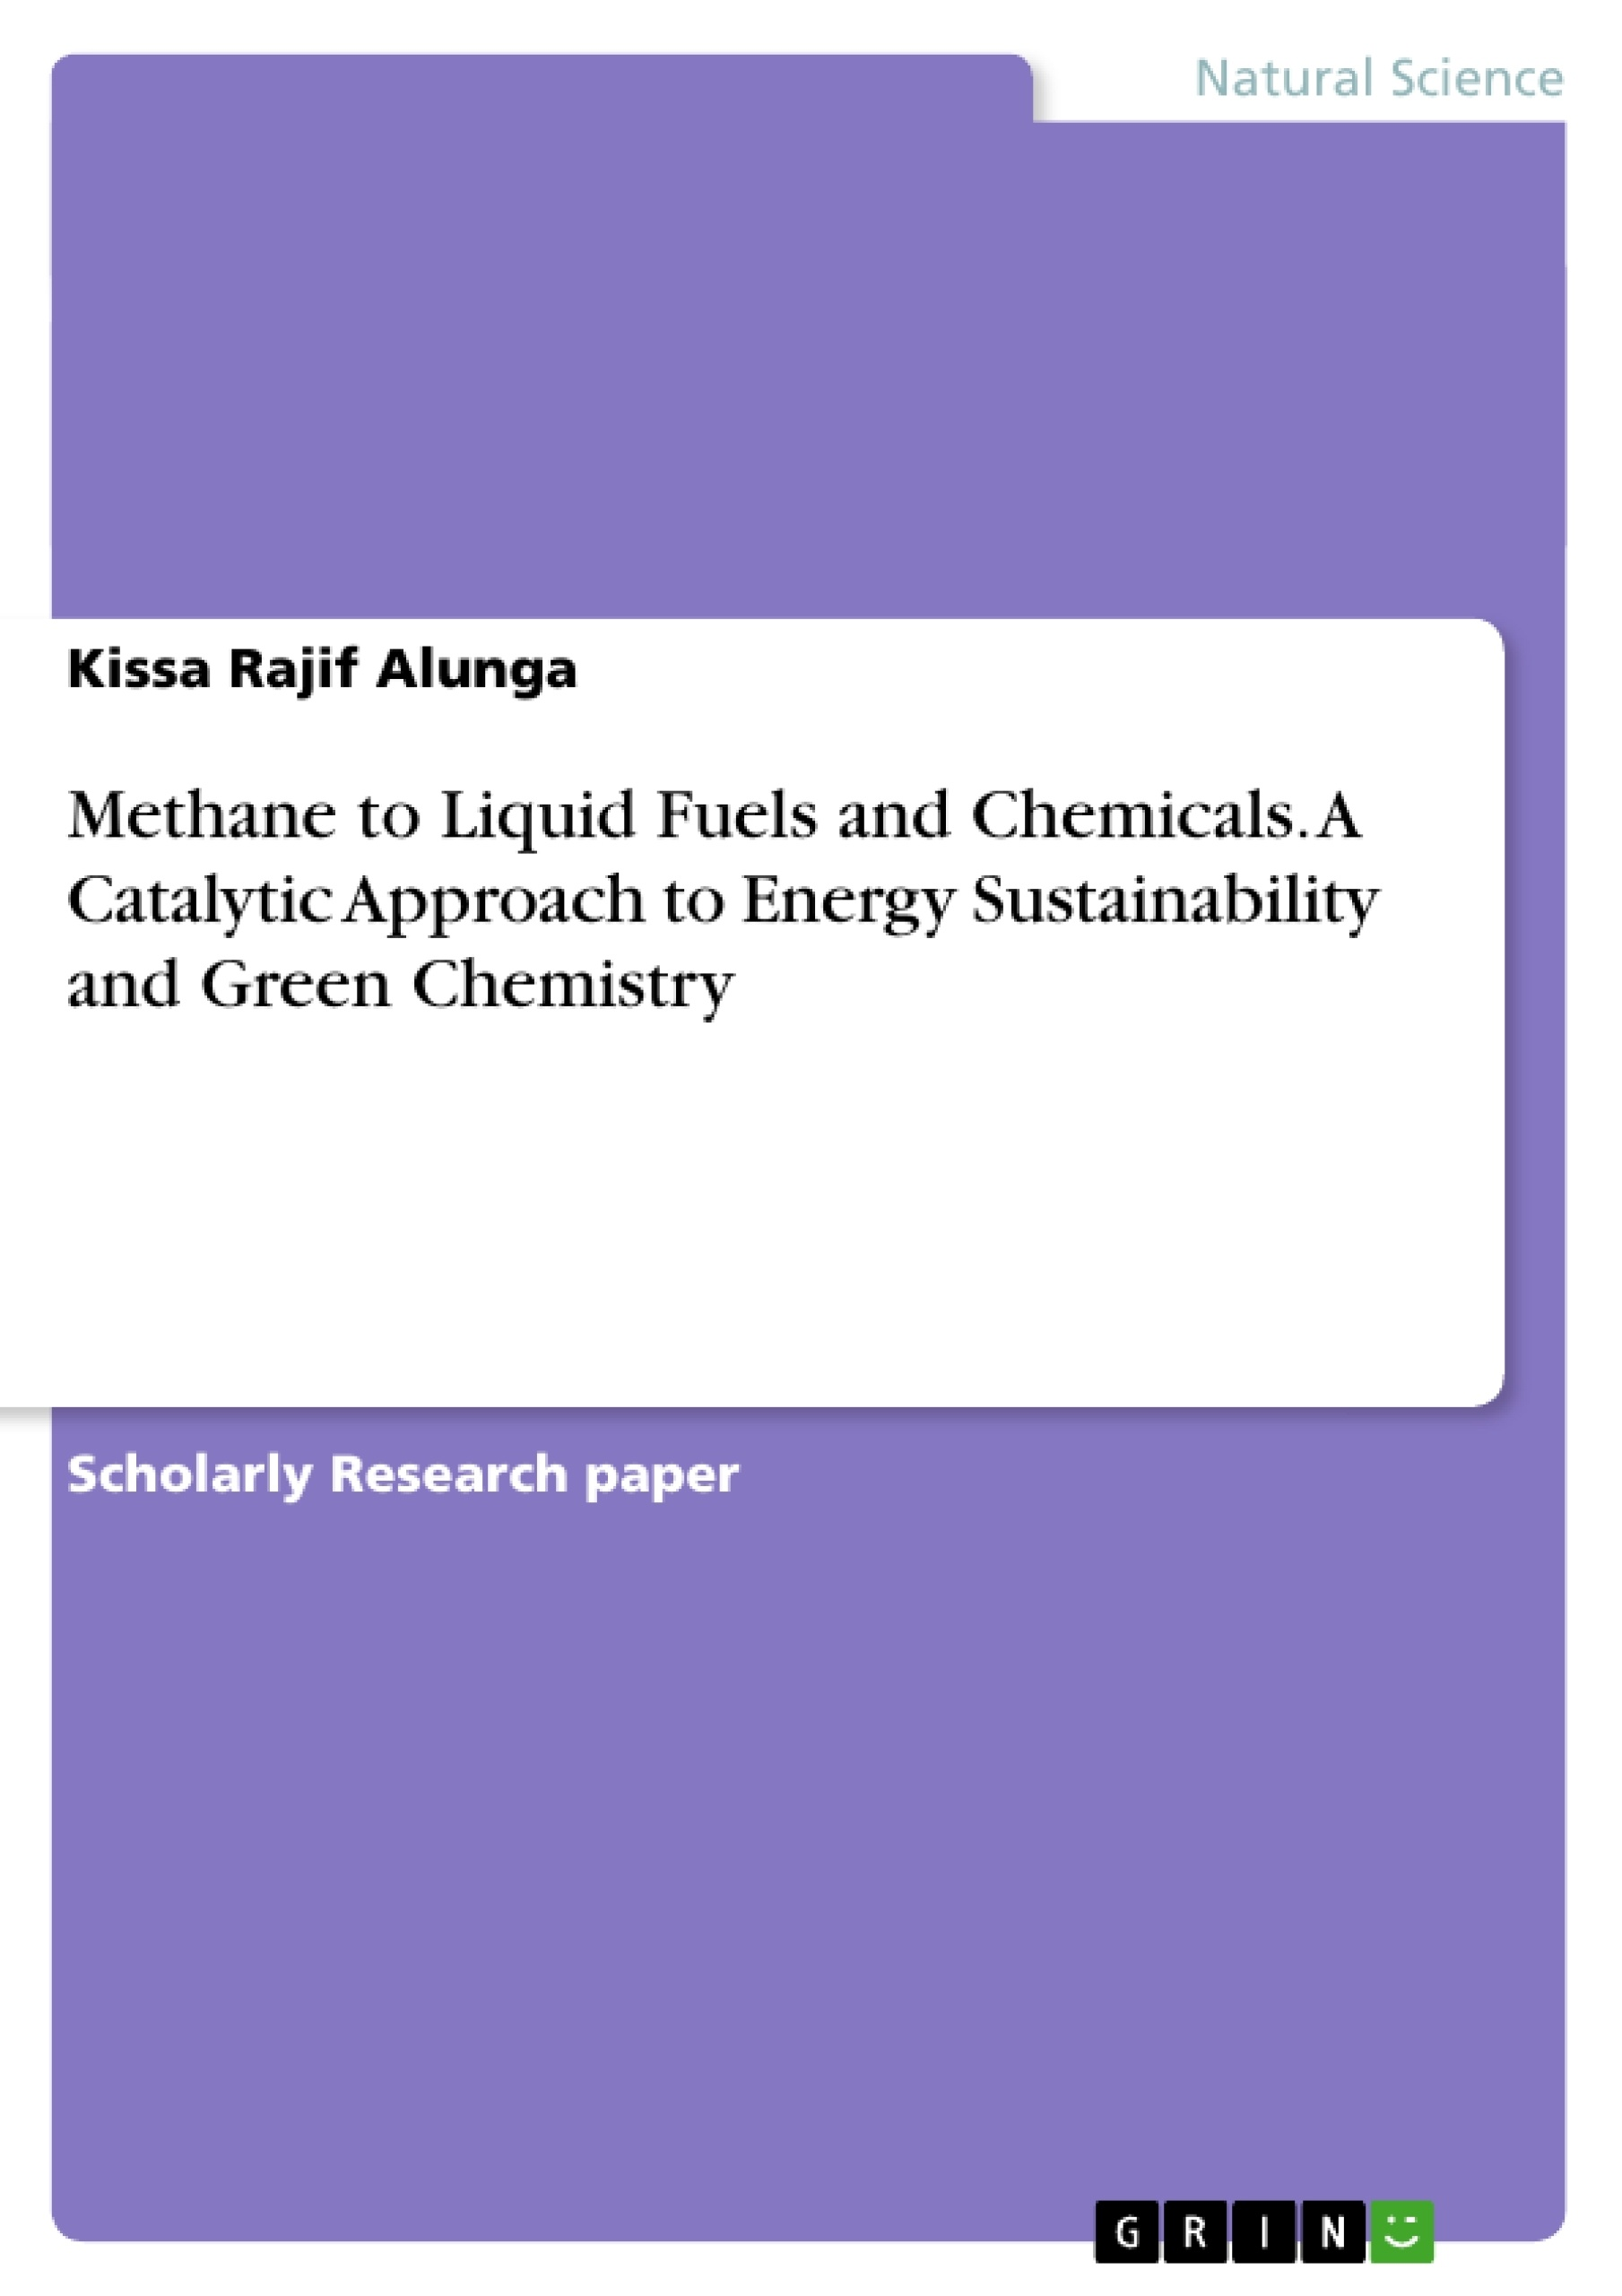 Title: Methane to Liquid Fuels and Chemicals. A Catalytic Approach to Energy Sustainability and Green Chemistry